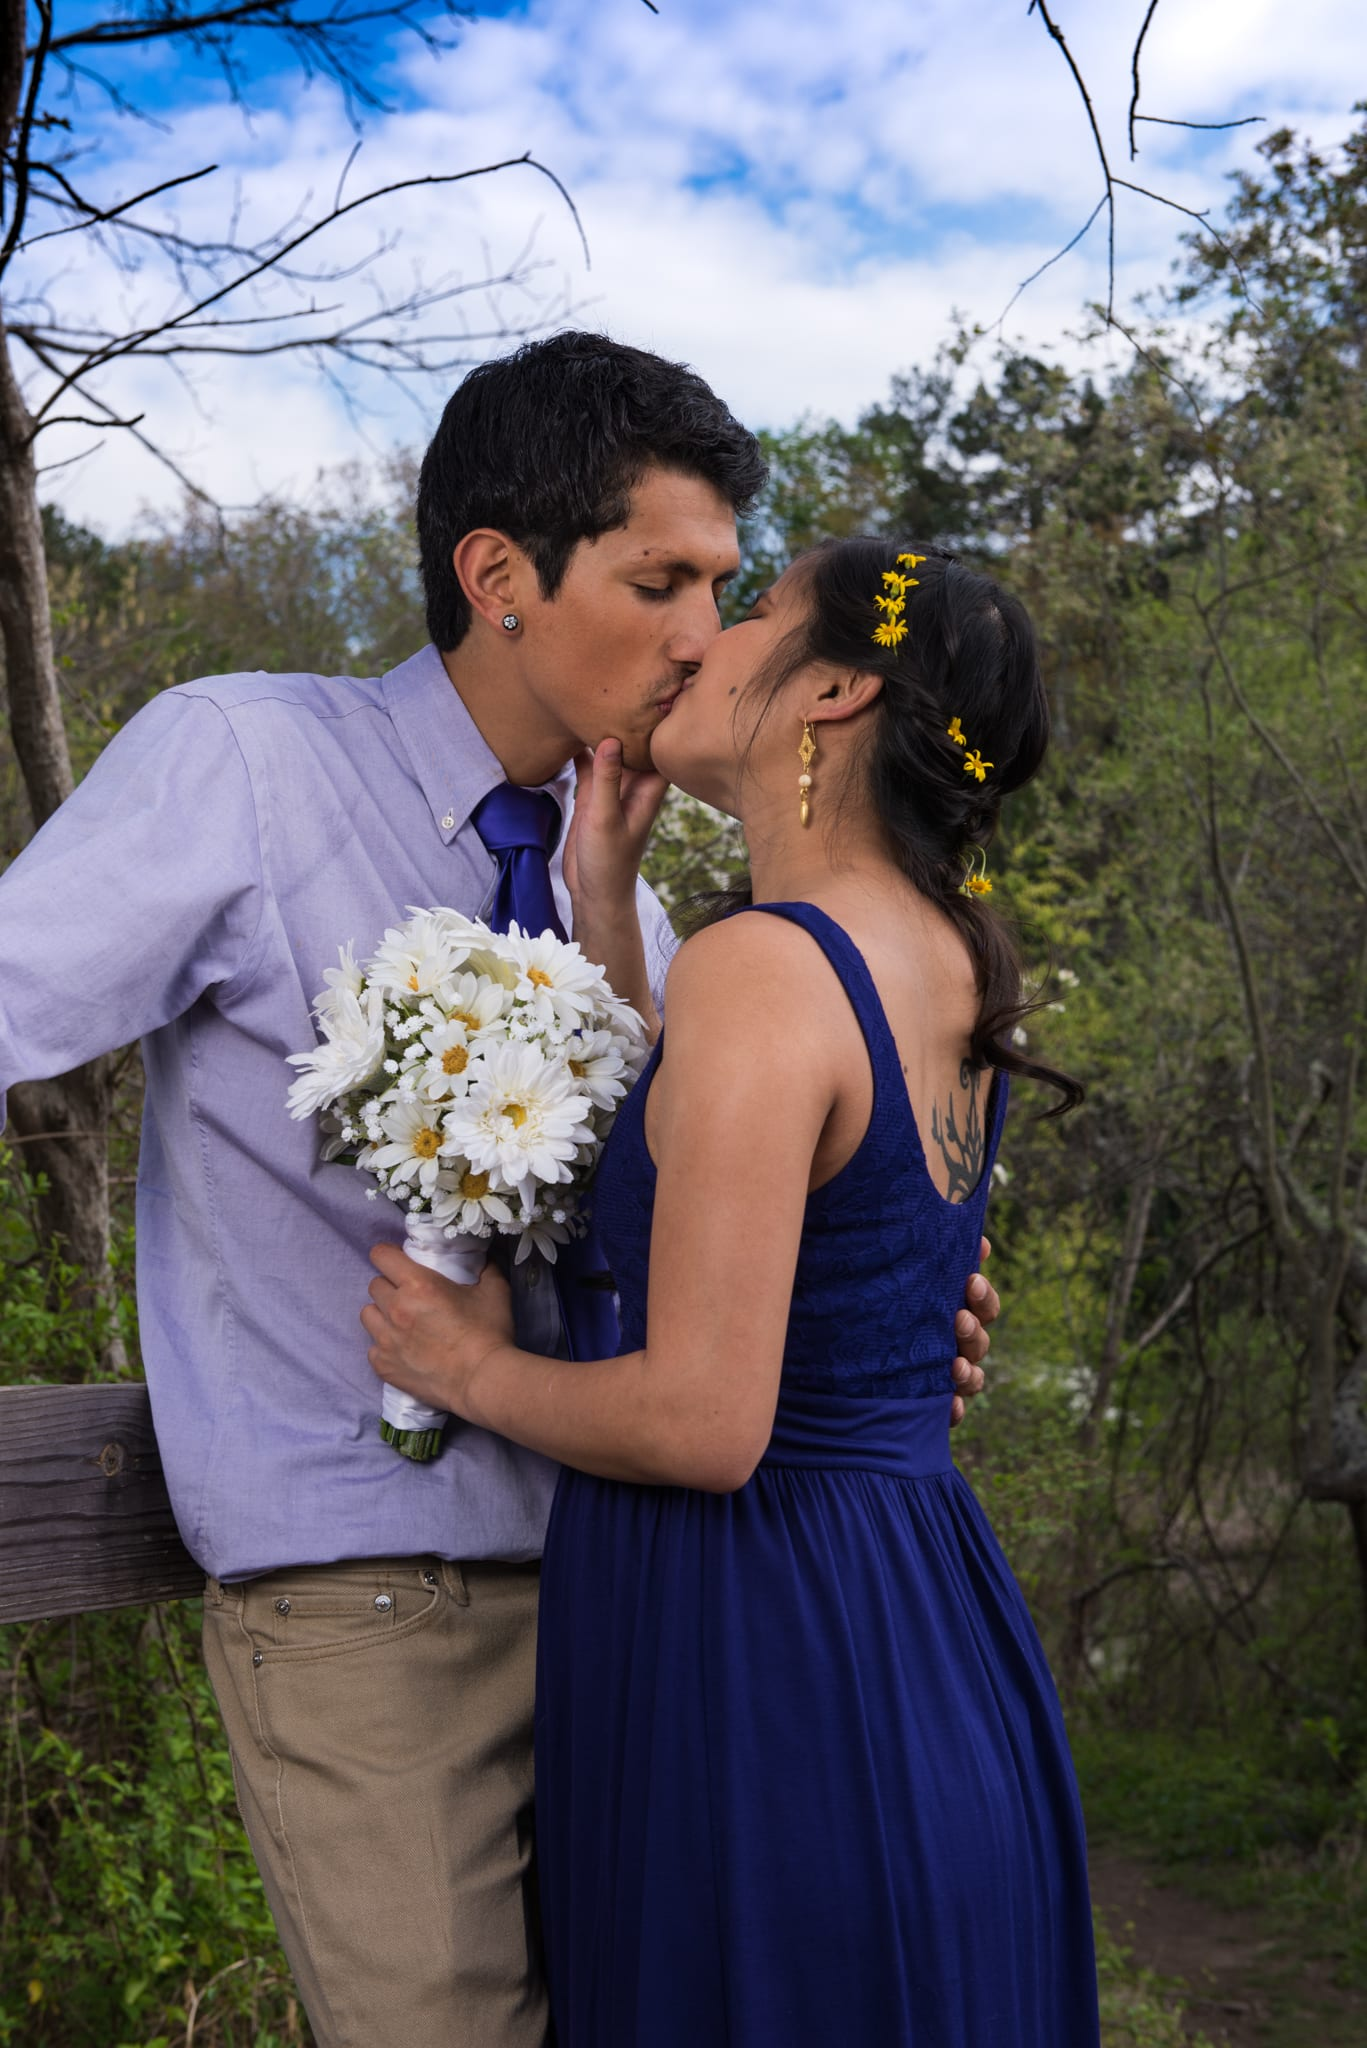 pretty couple elope kiss with bouquet